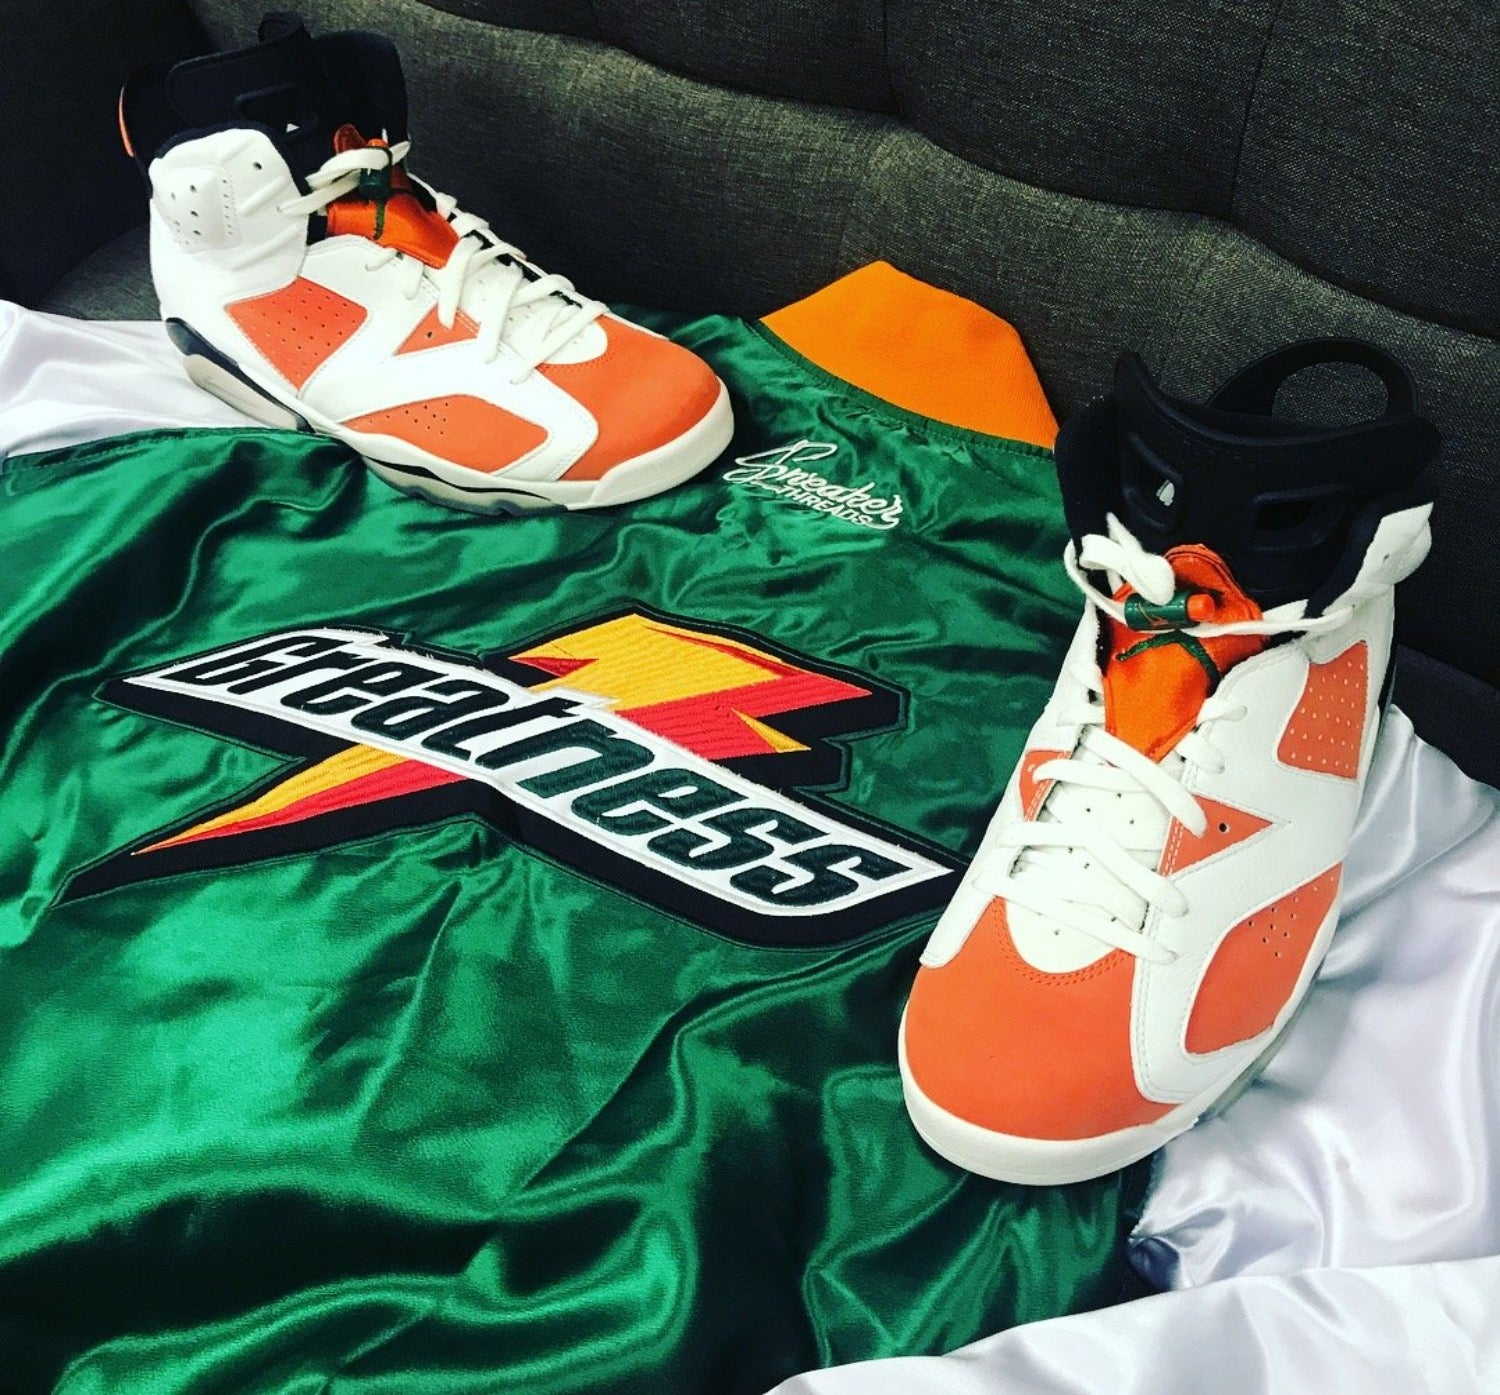 94647e8ac82 Jordan 6 gatorade bomber jacket match retro 6 like mike.